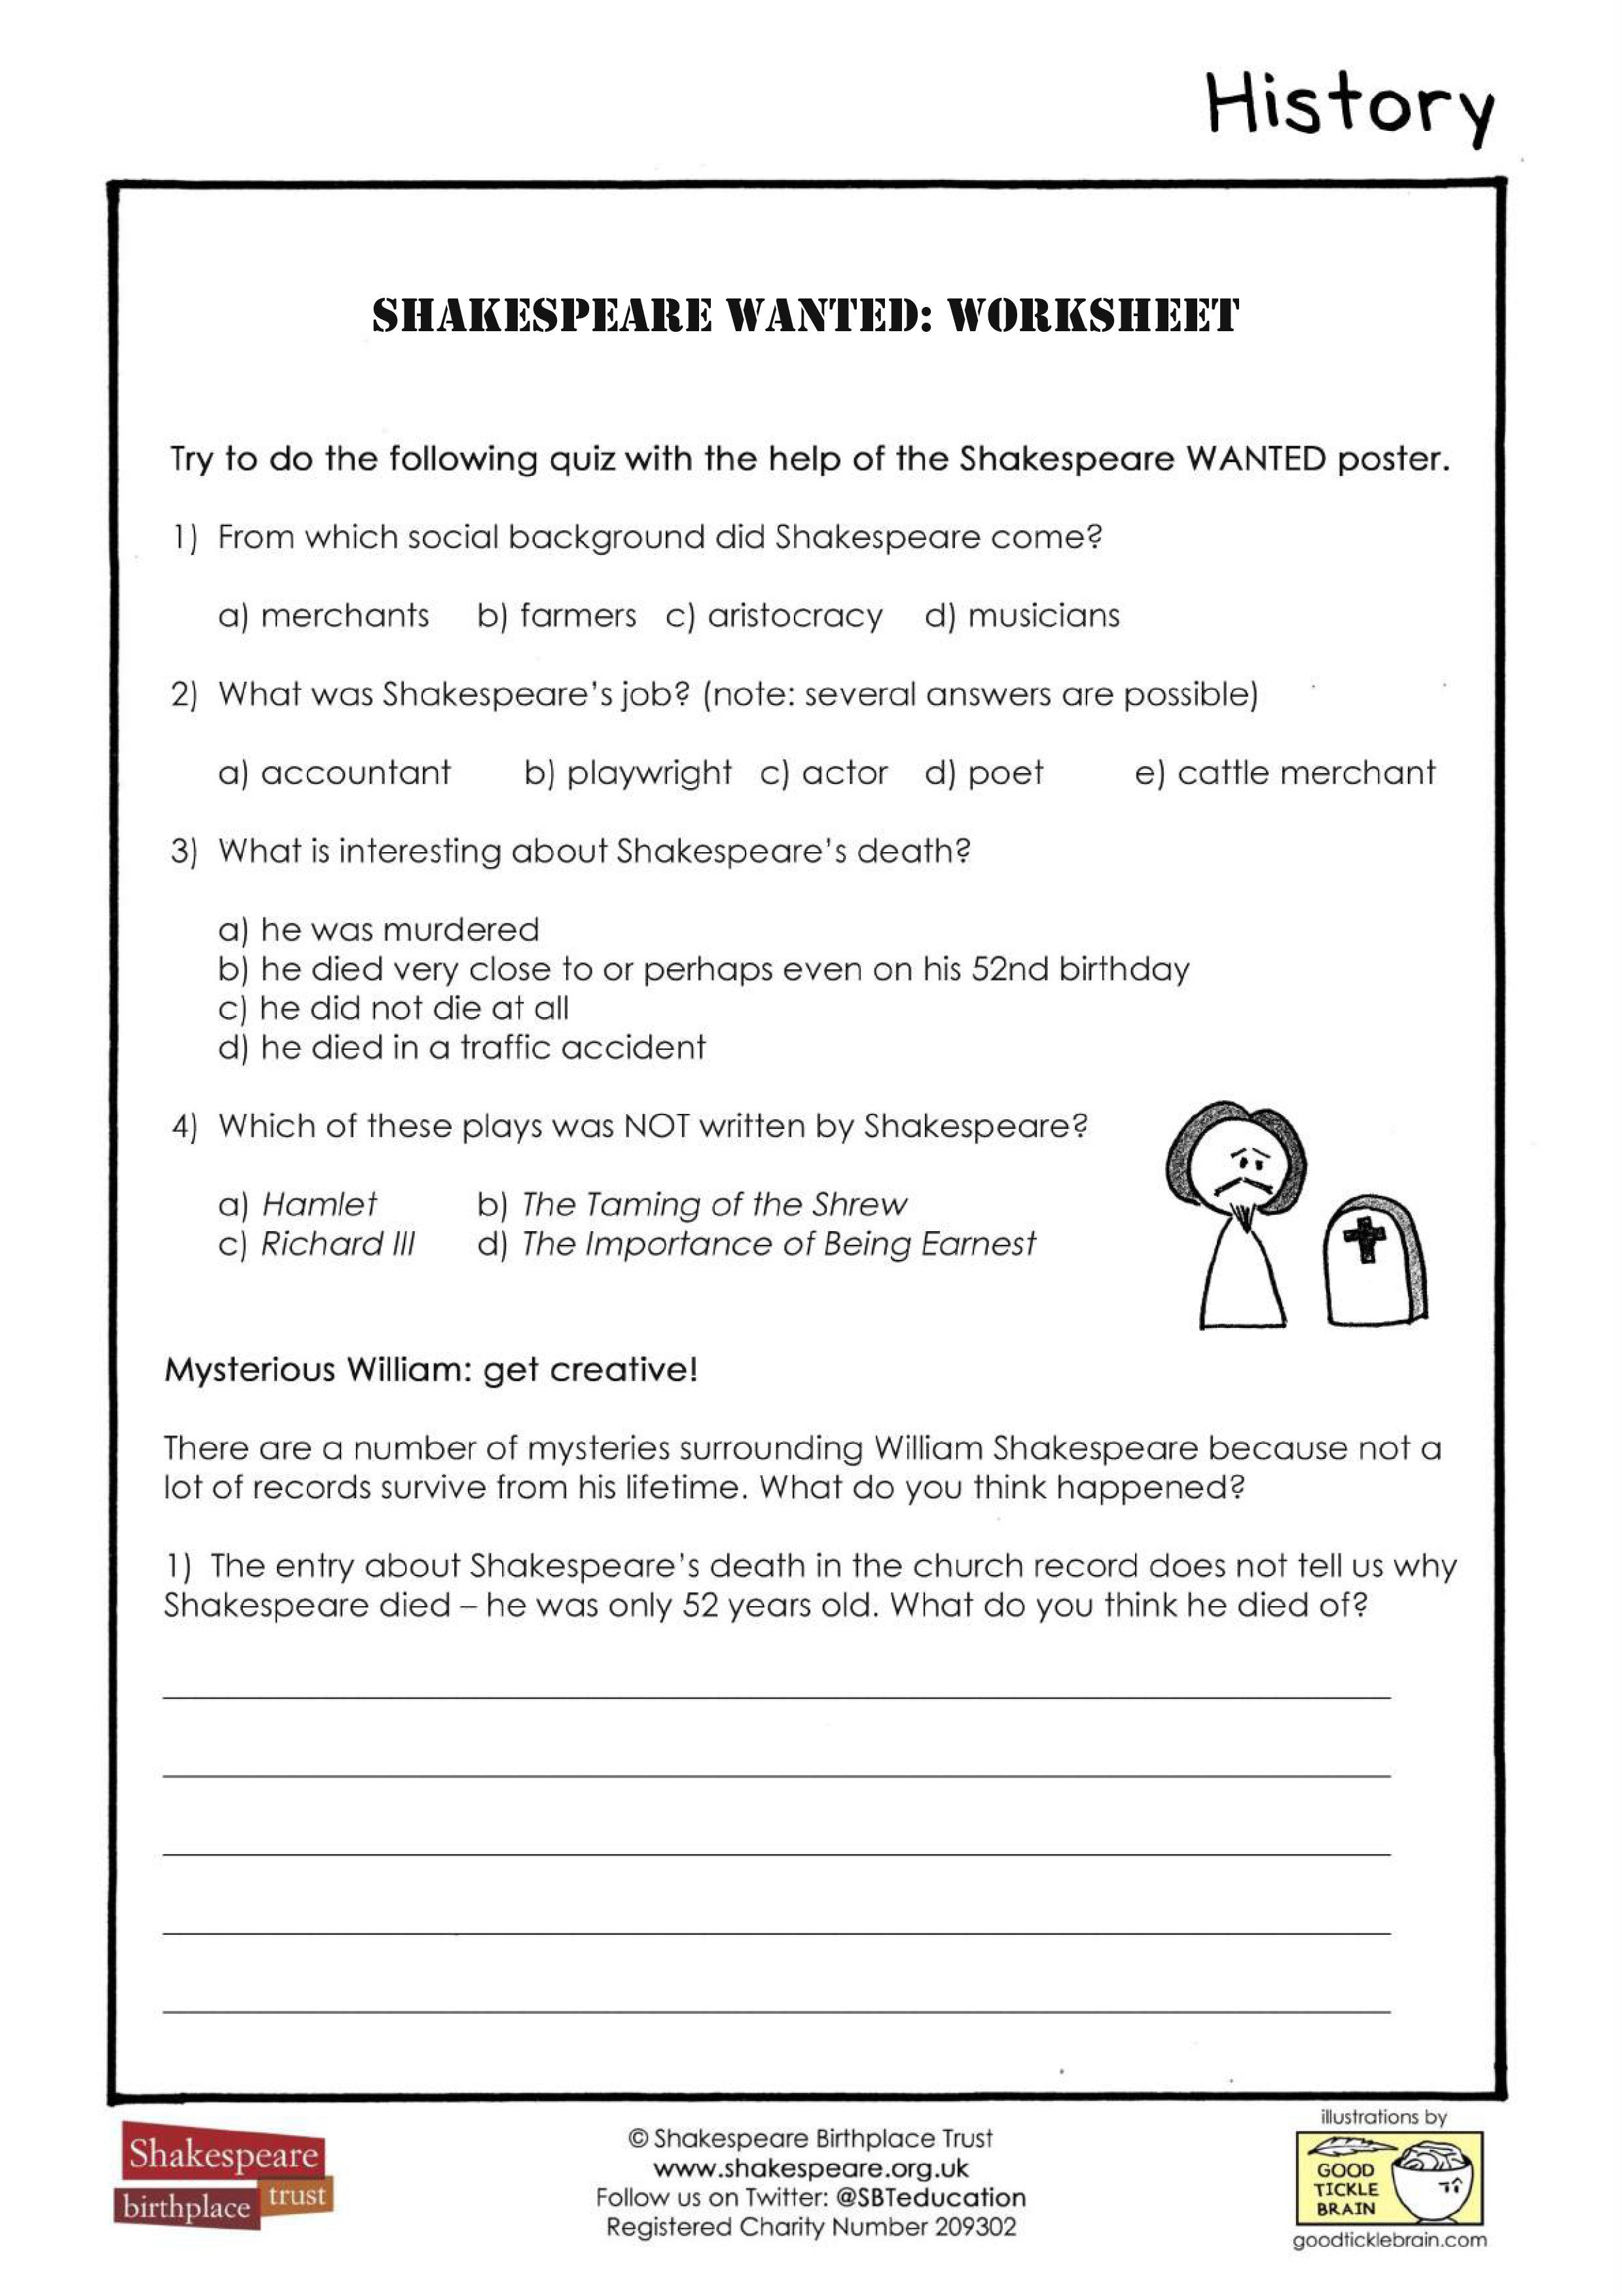 Shakespeare Wanted Worksheet